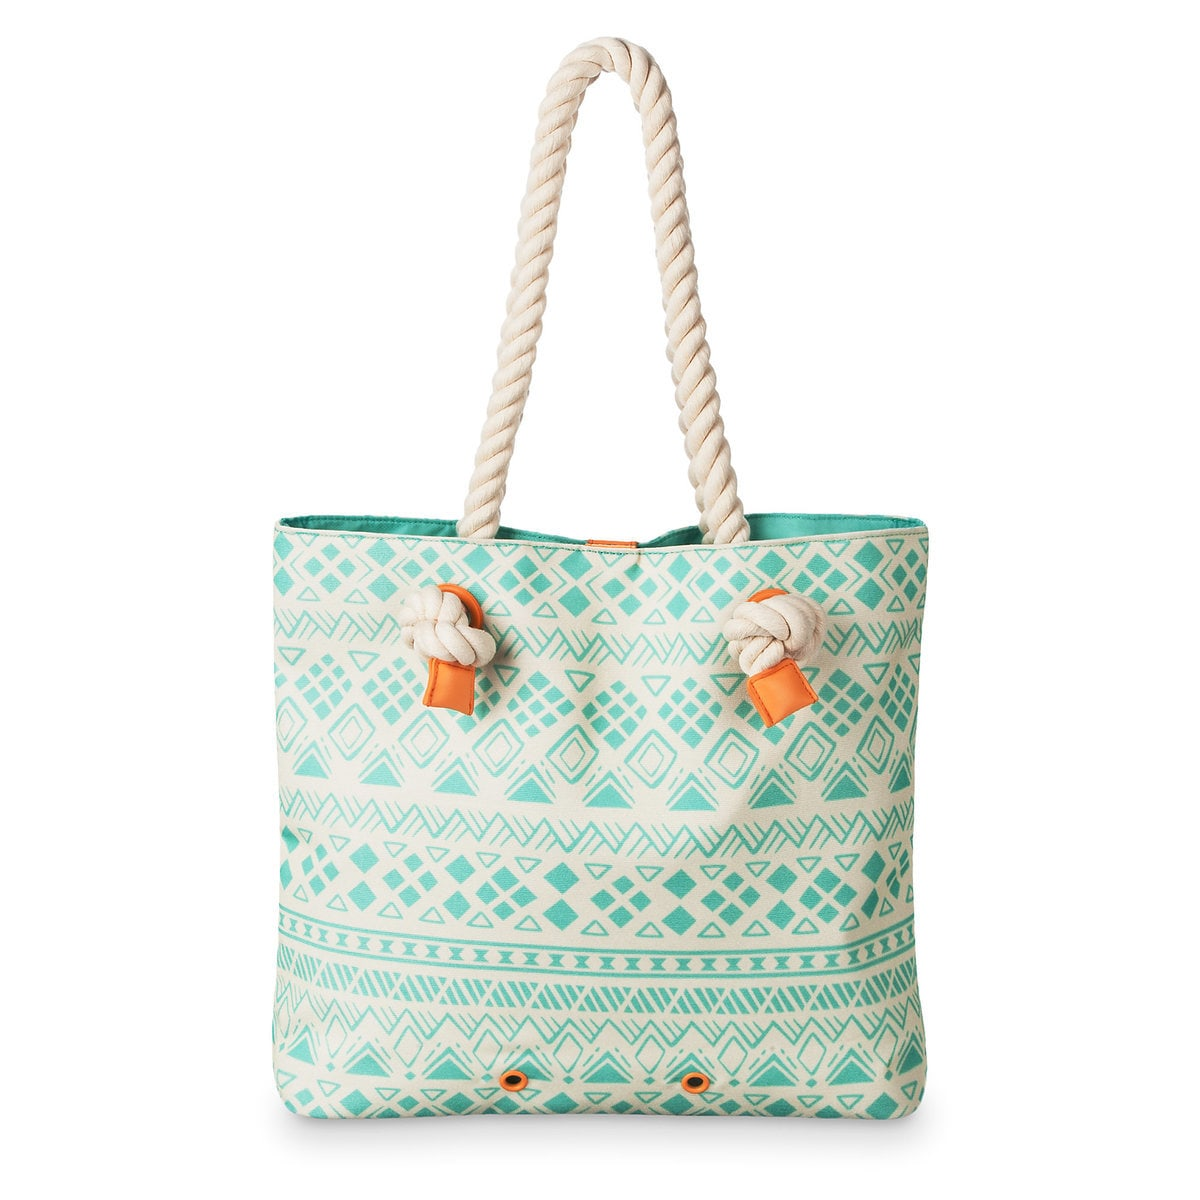 a3c7f3a1c49 Product Image of Moana Swim Bag for Kids   2